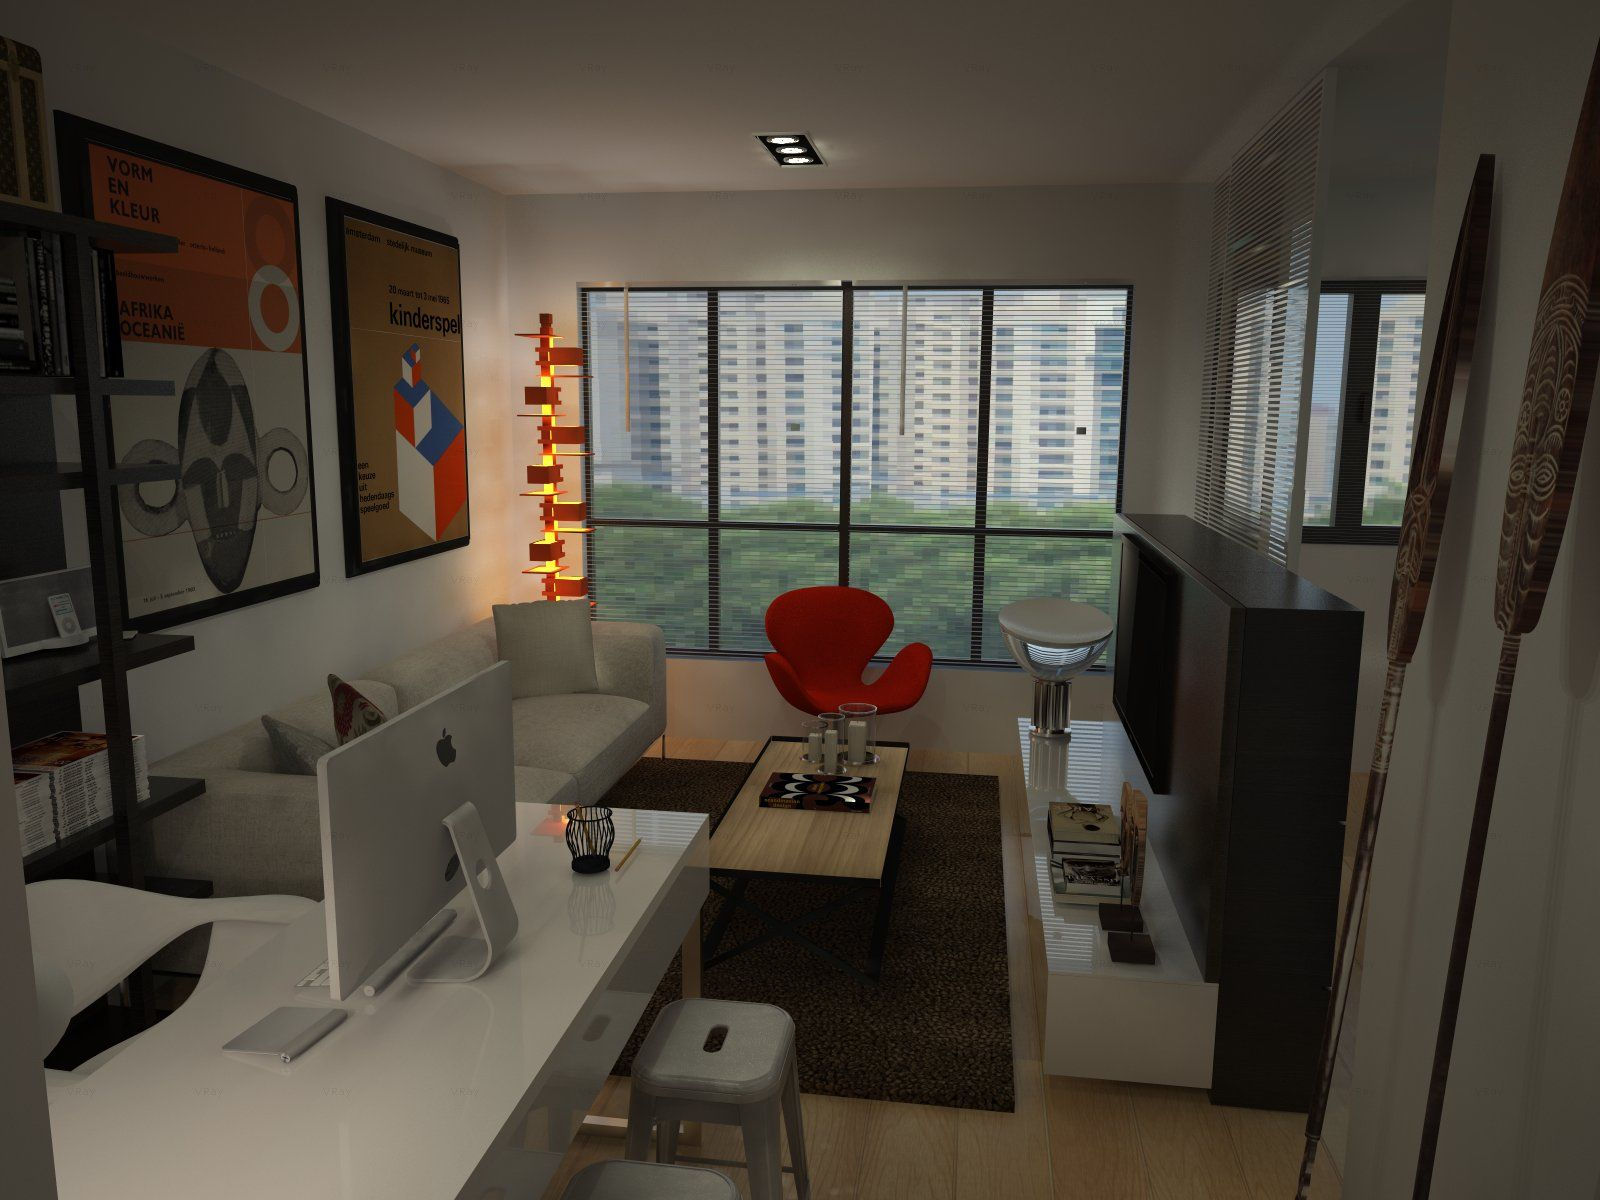 Hdb bto for singles 2 room 47sqm hdb apartment in for Interior design 4 room hdb flat